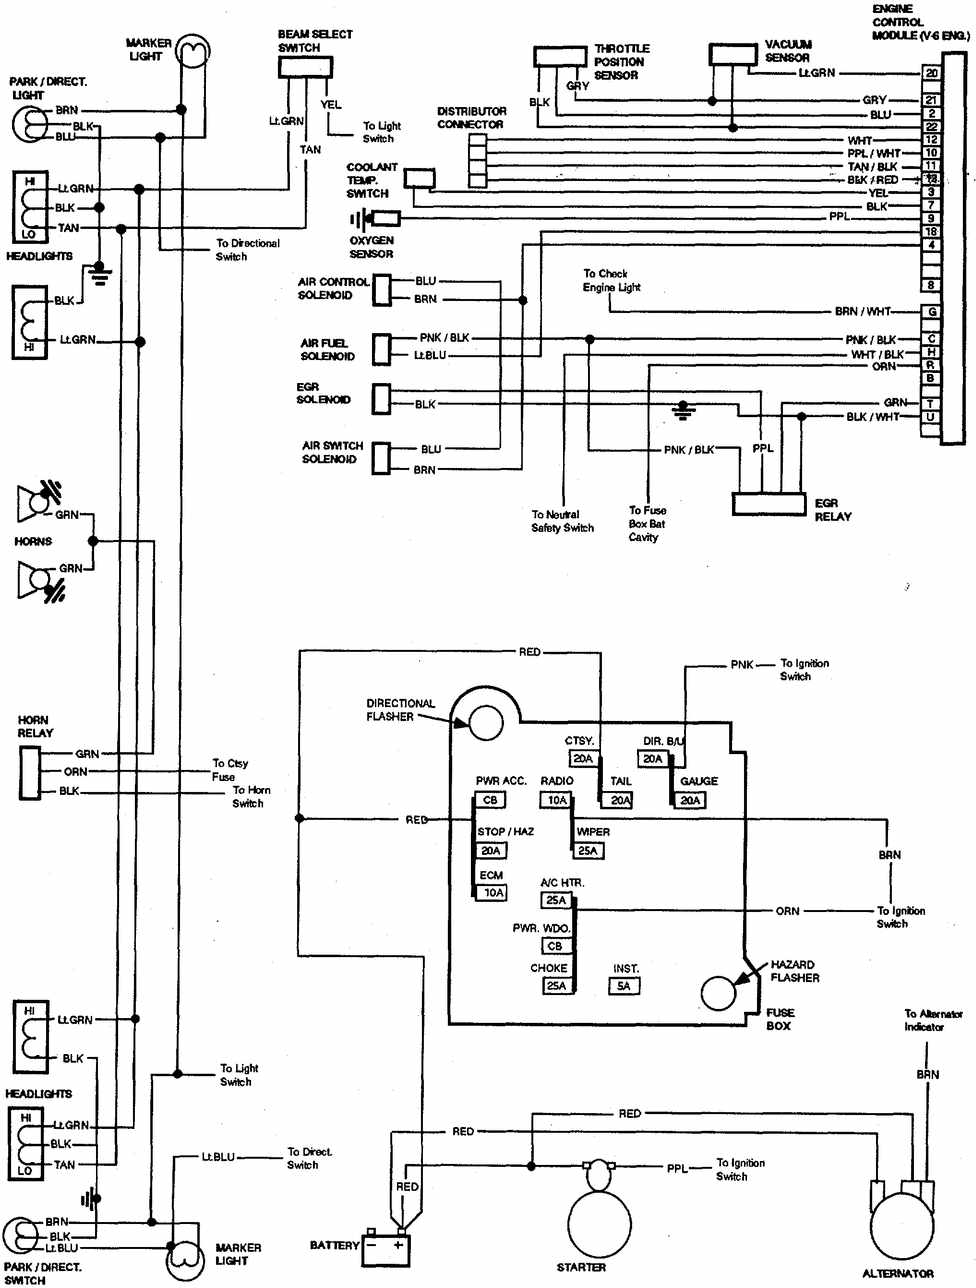 1982 chevy truck fuel wiring diagram schematic wiring diagram